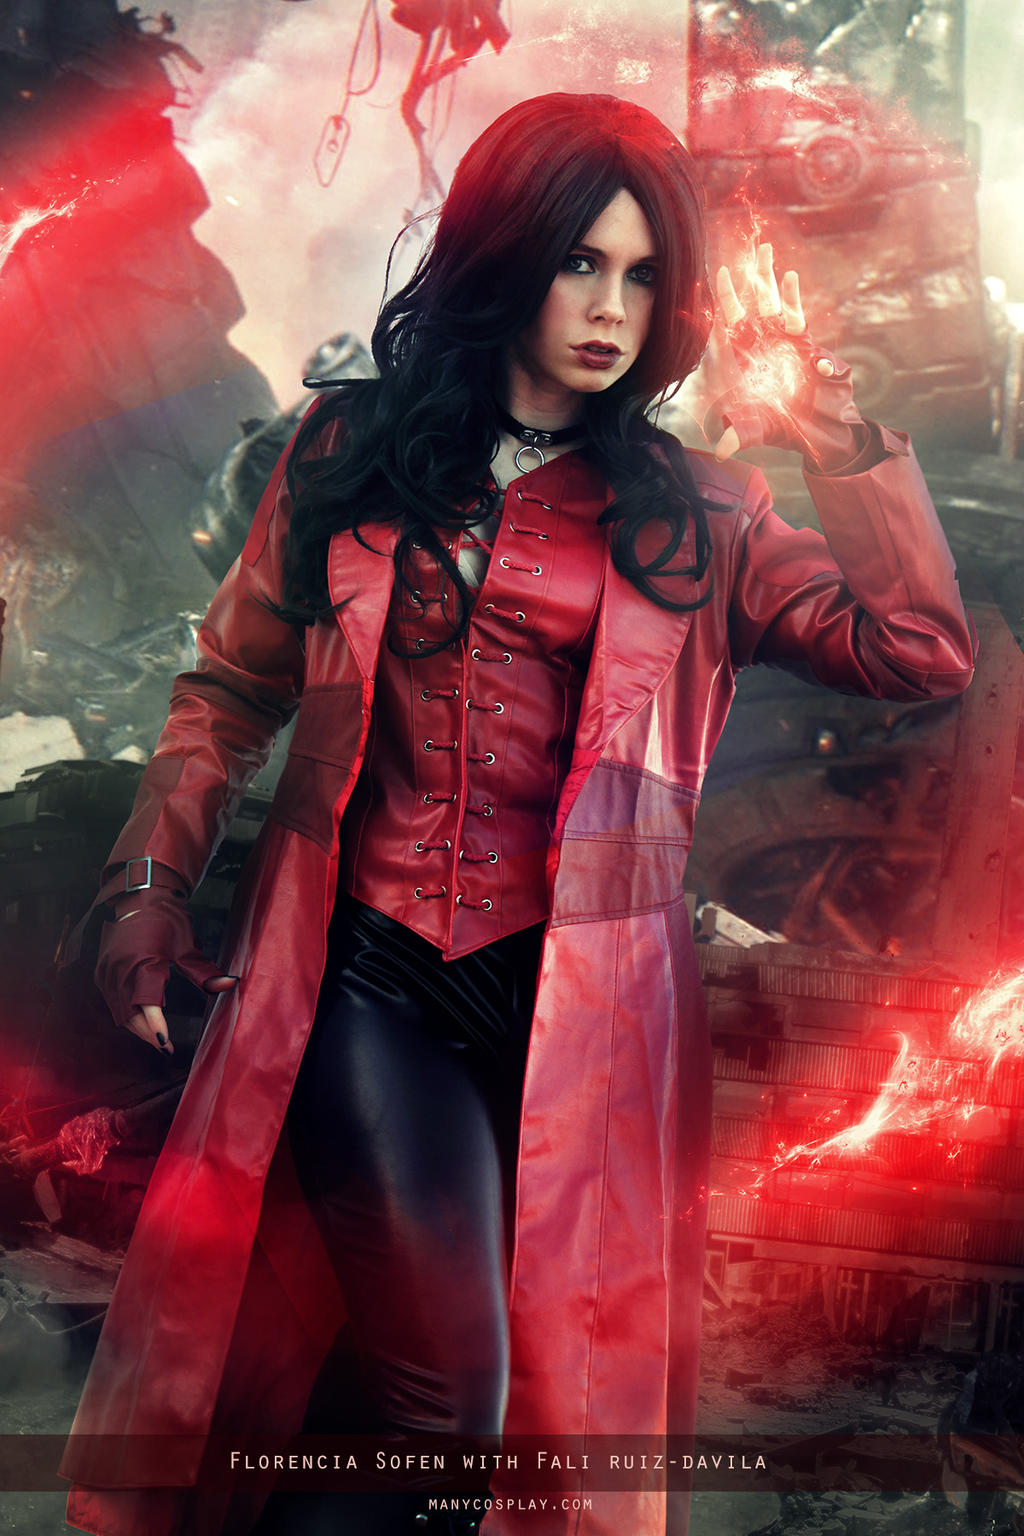 scarlet witch dating Scarlet witch is the love interest of vision from the marvel universe and is a member of the avengers she was originally part of the brotherhood of evil mutants led by her father magneto, until she and her brother quicksilver left and joined the avengers led by captain america.